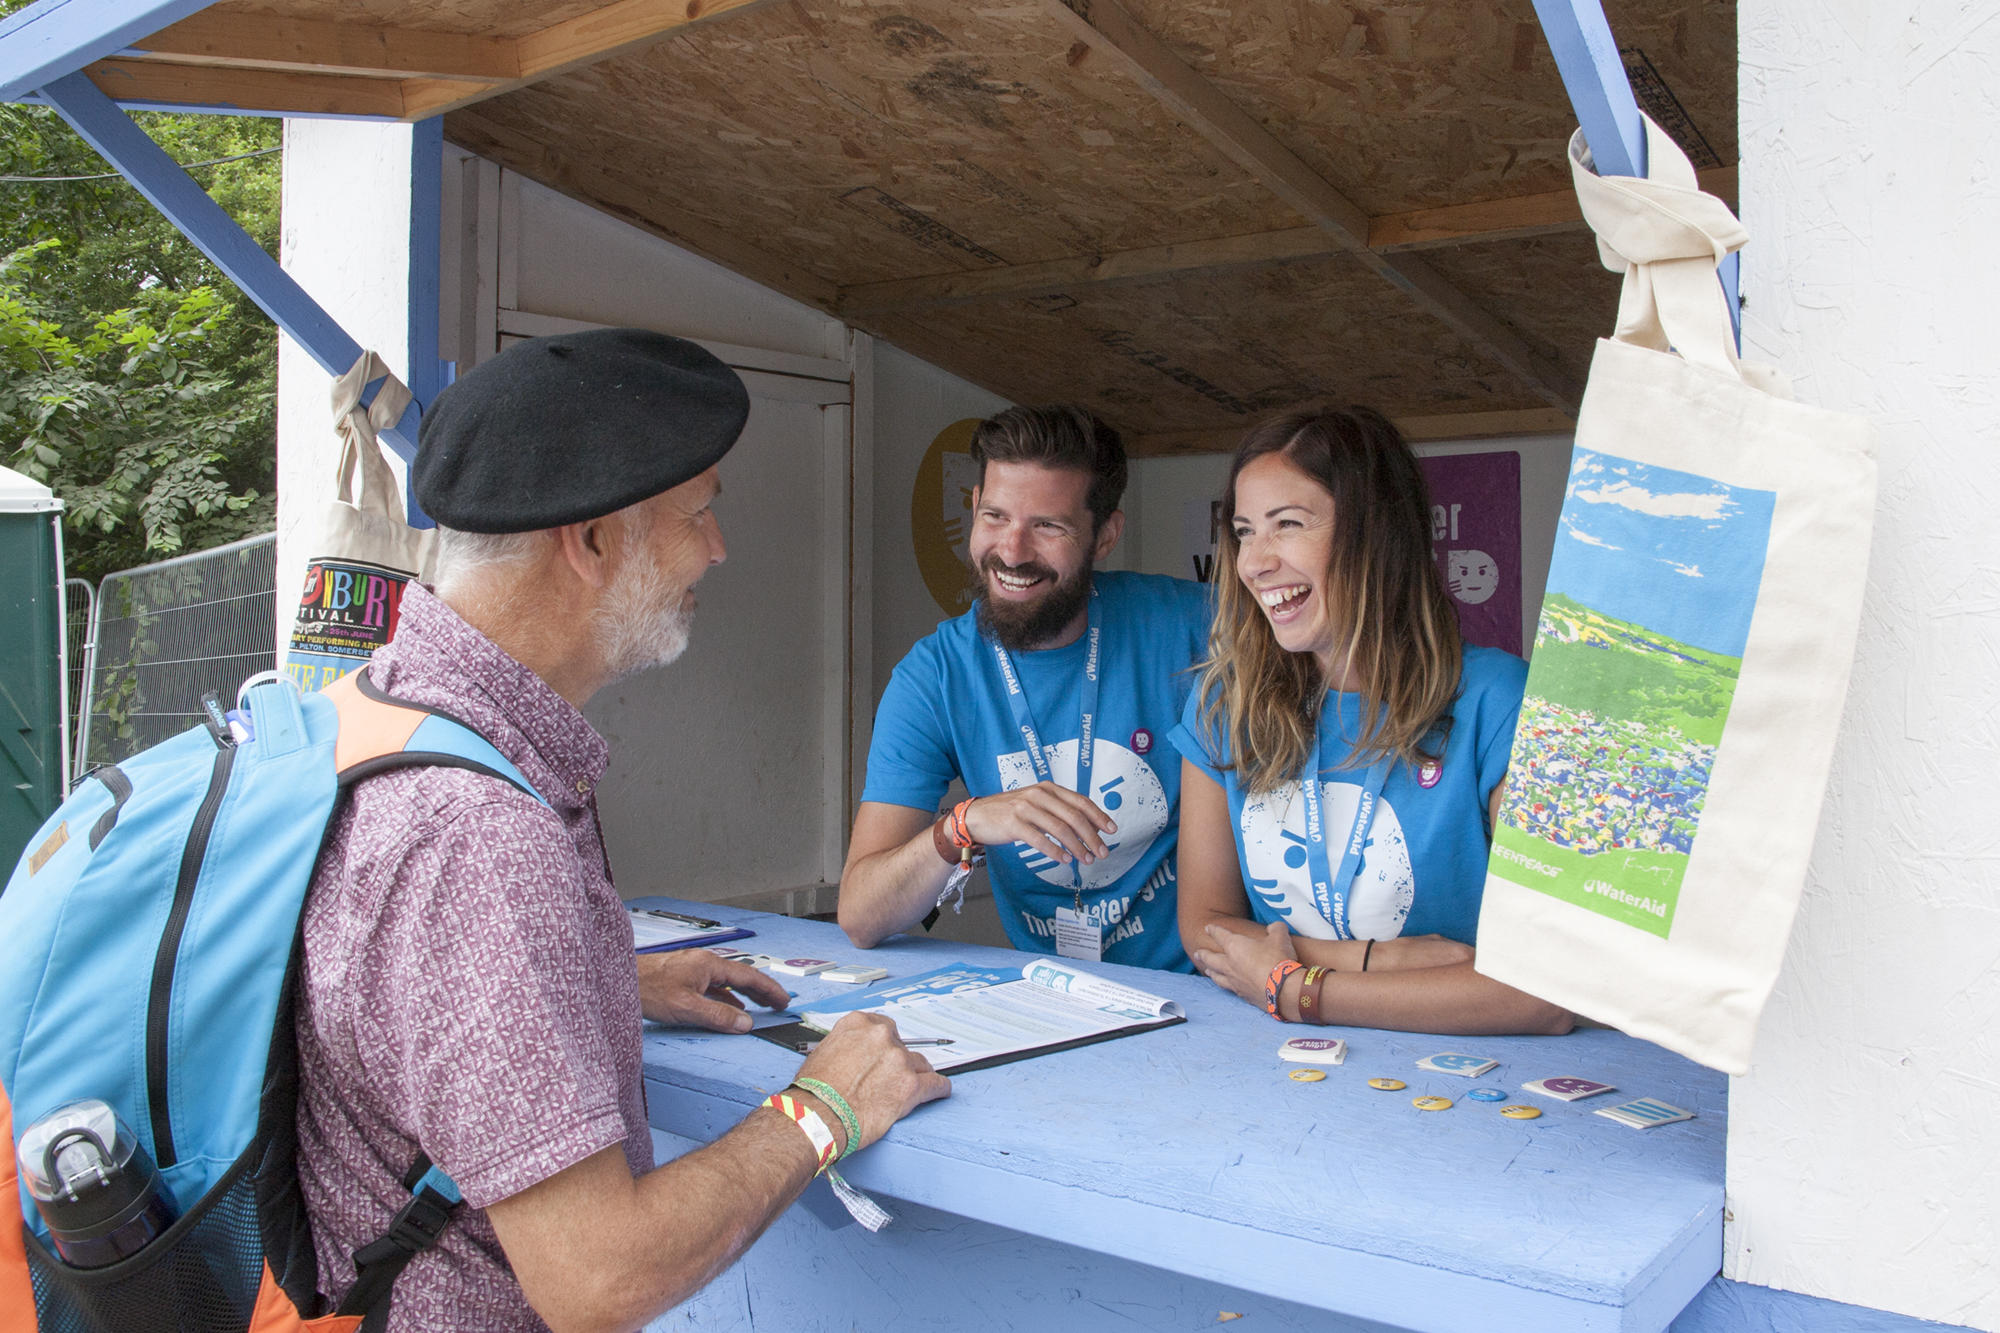 A WaterAid volunteer and staff member manage the Water Kiosk at Glastonbury festival, June 2017.